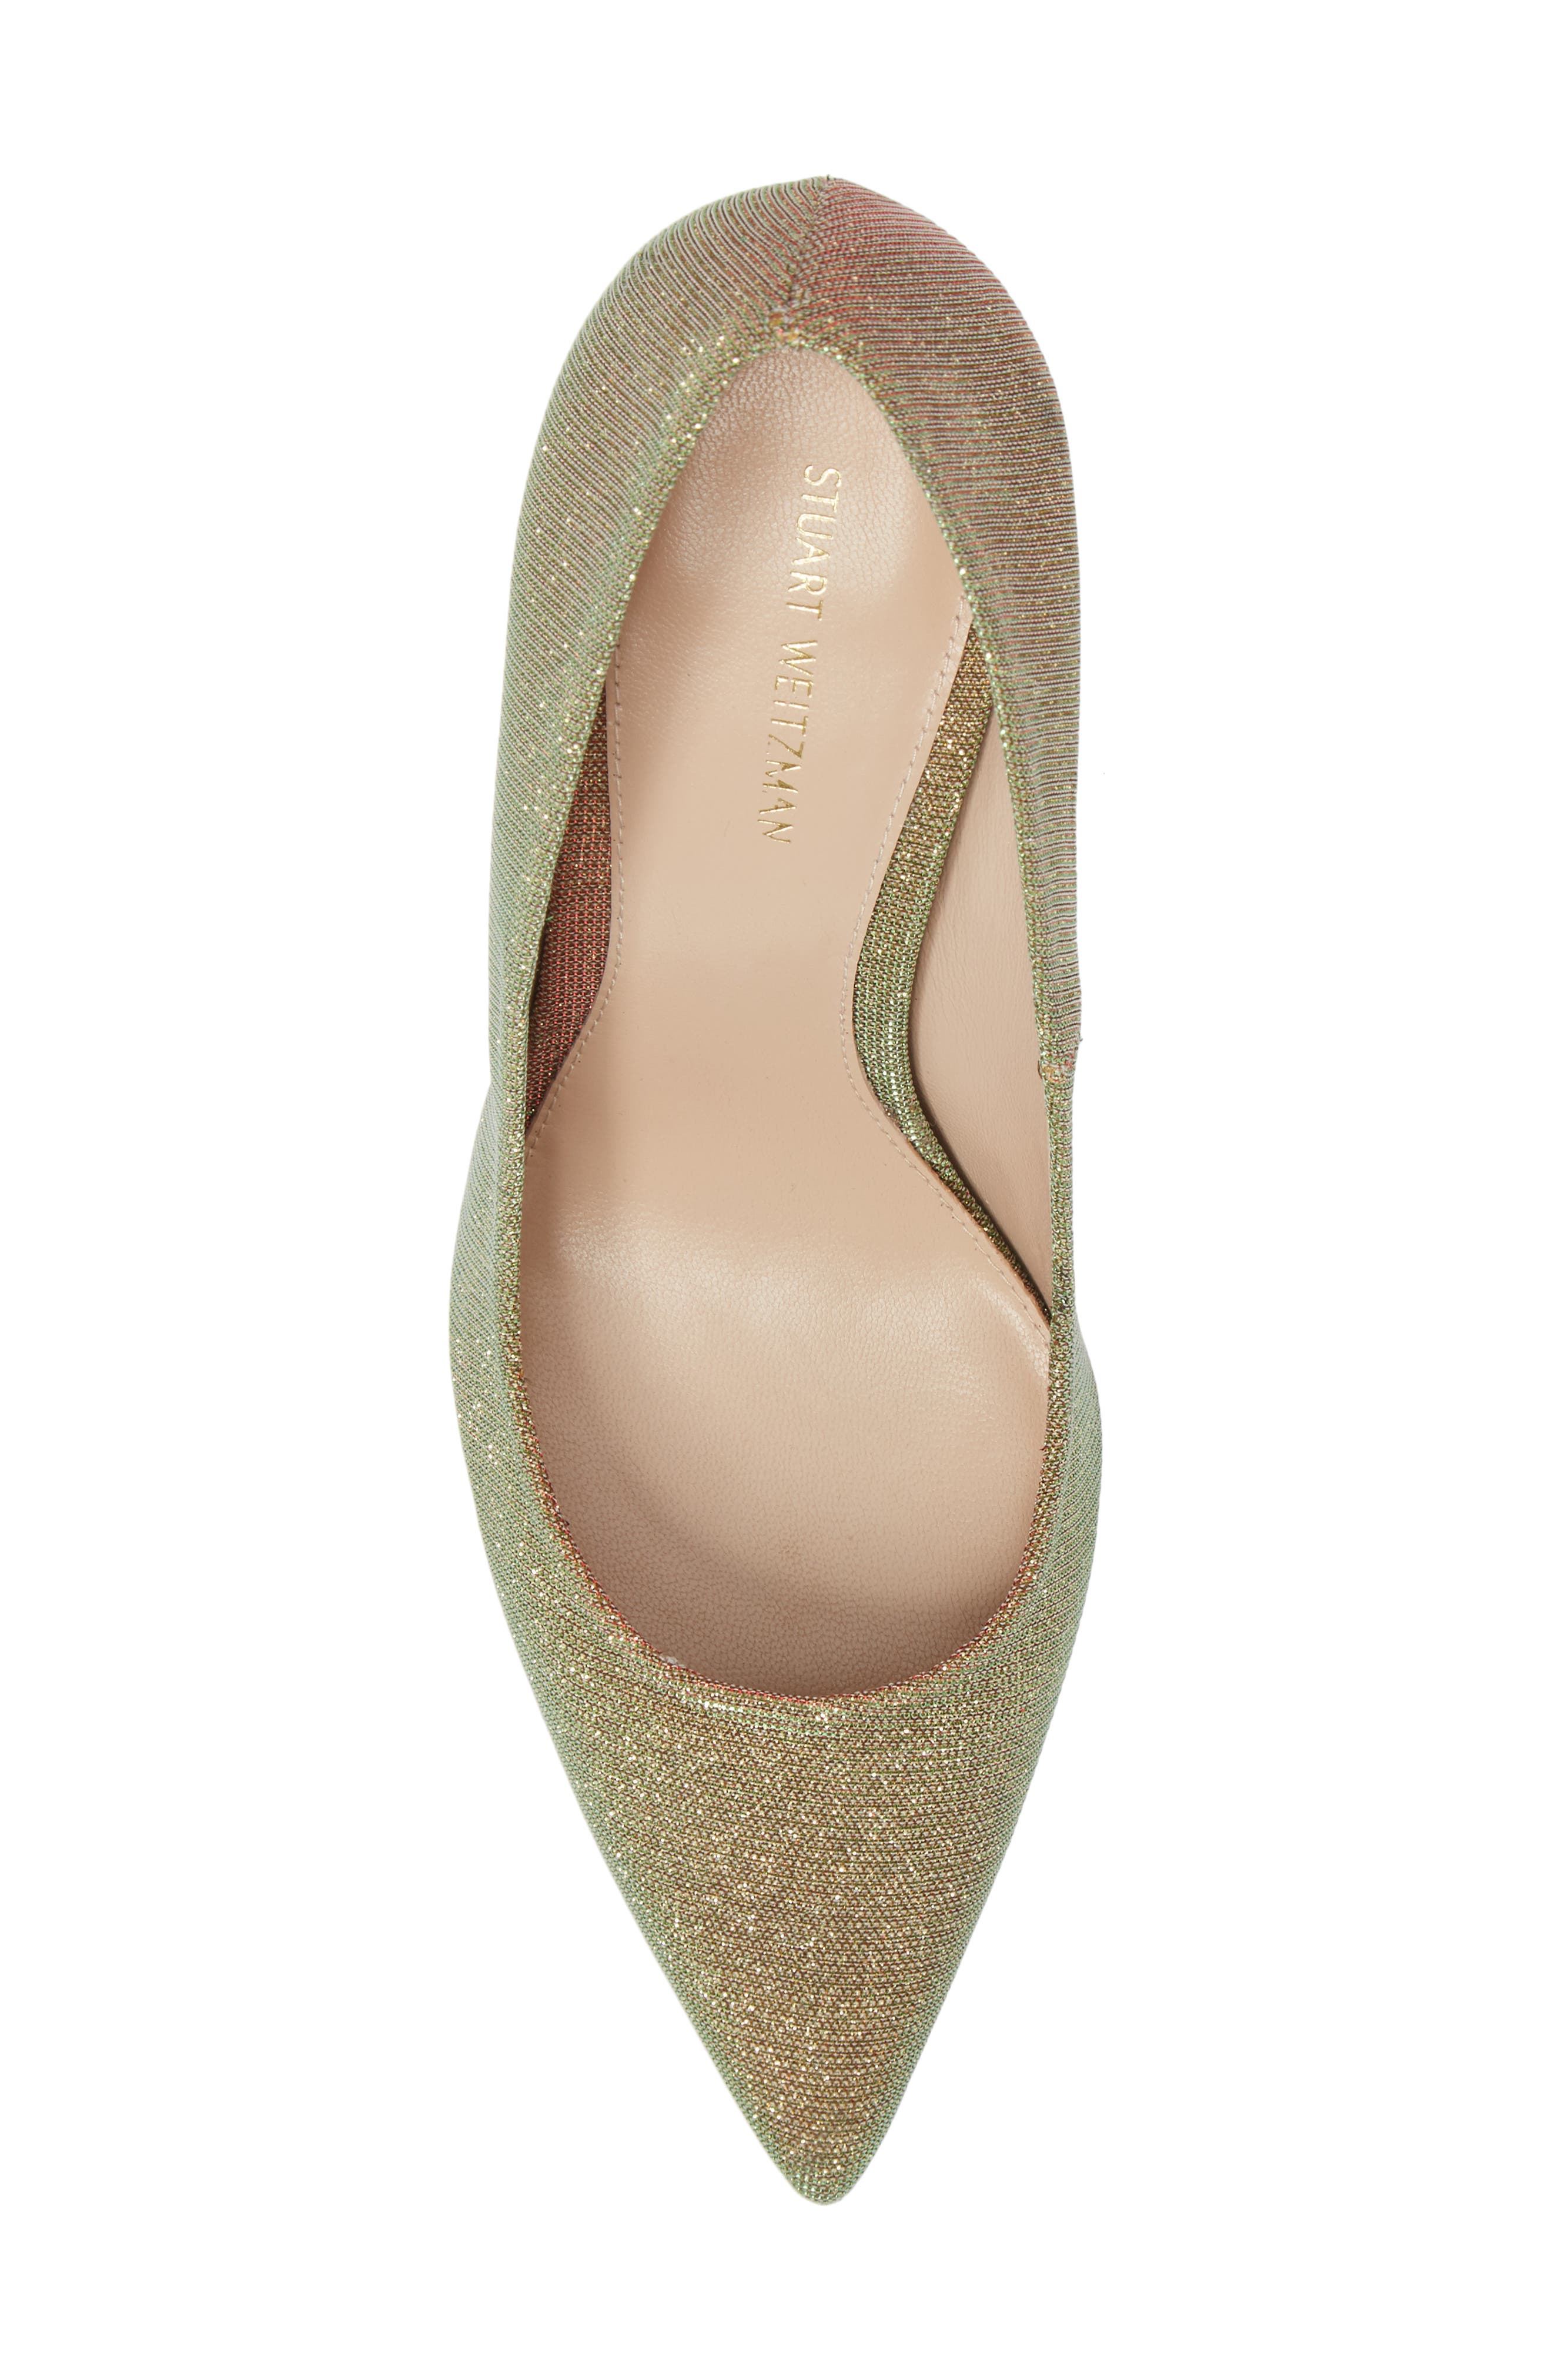 Chicster Pointy Toe Pump,                             Alternate thumbnail 5, color,                             Gold Multi Nighttime